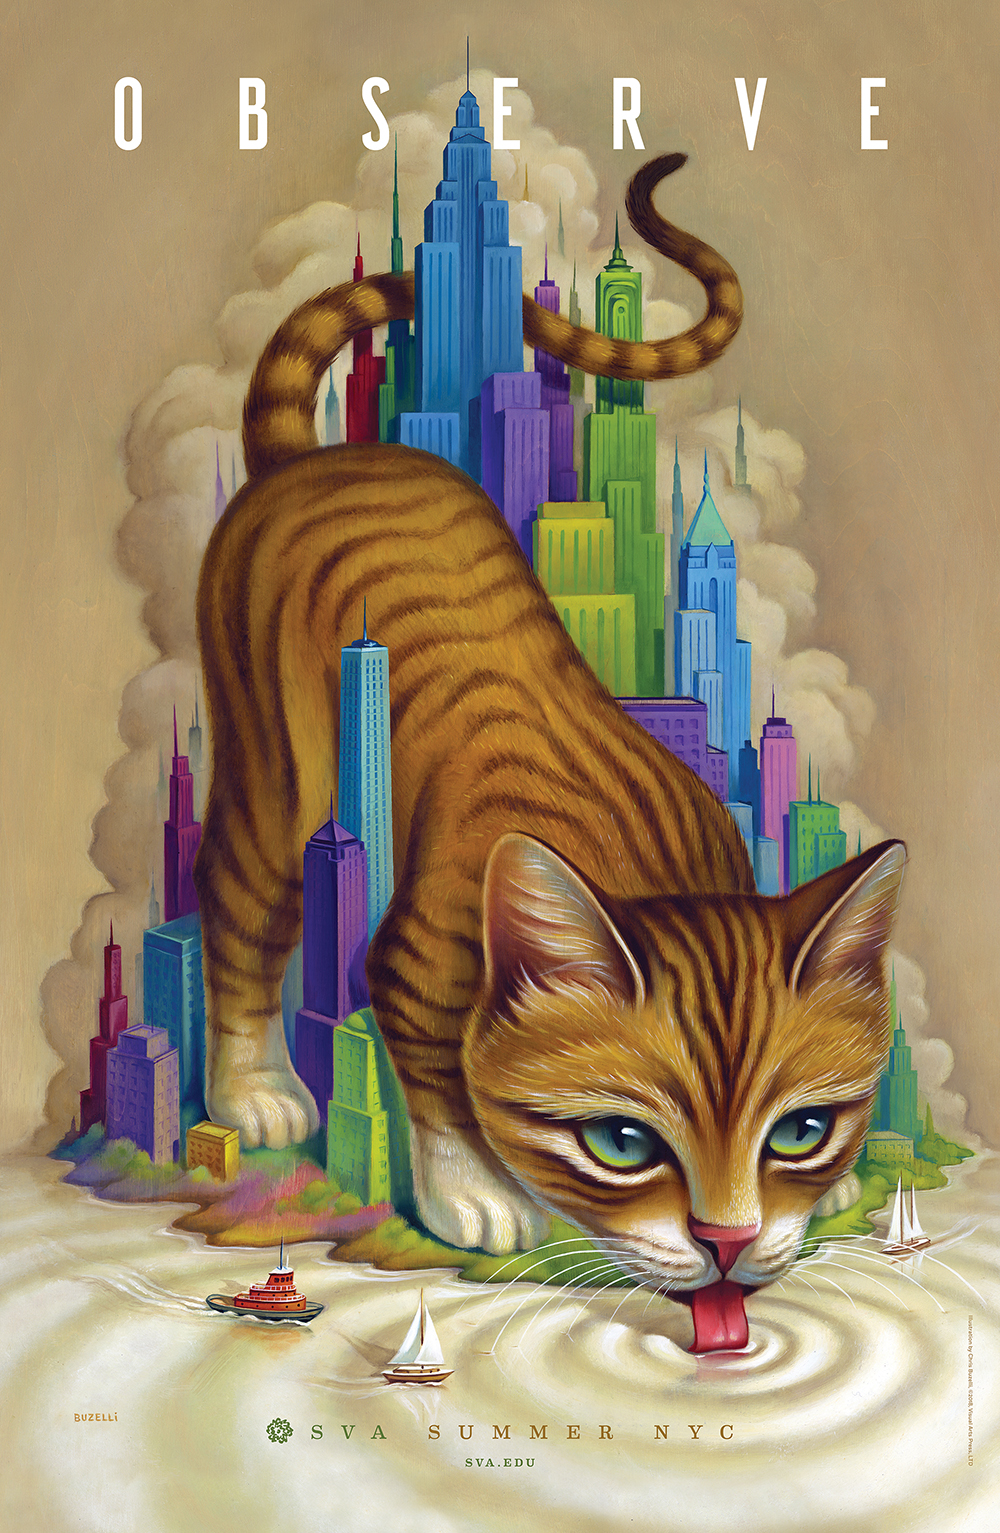 A giant orange tabby cat drinks water from a river/ocean, among a miniature colorful cityscape. Two small ships are visible.